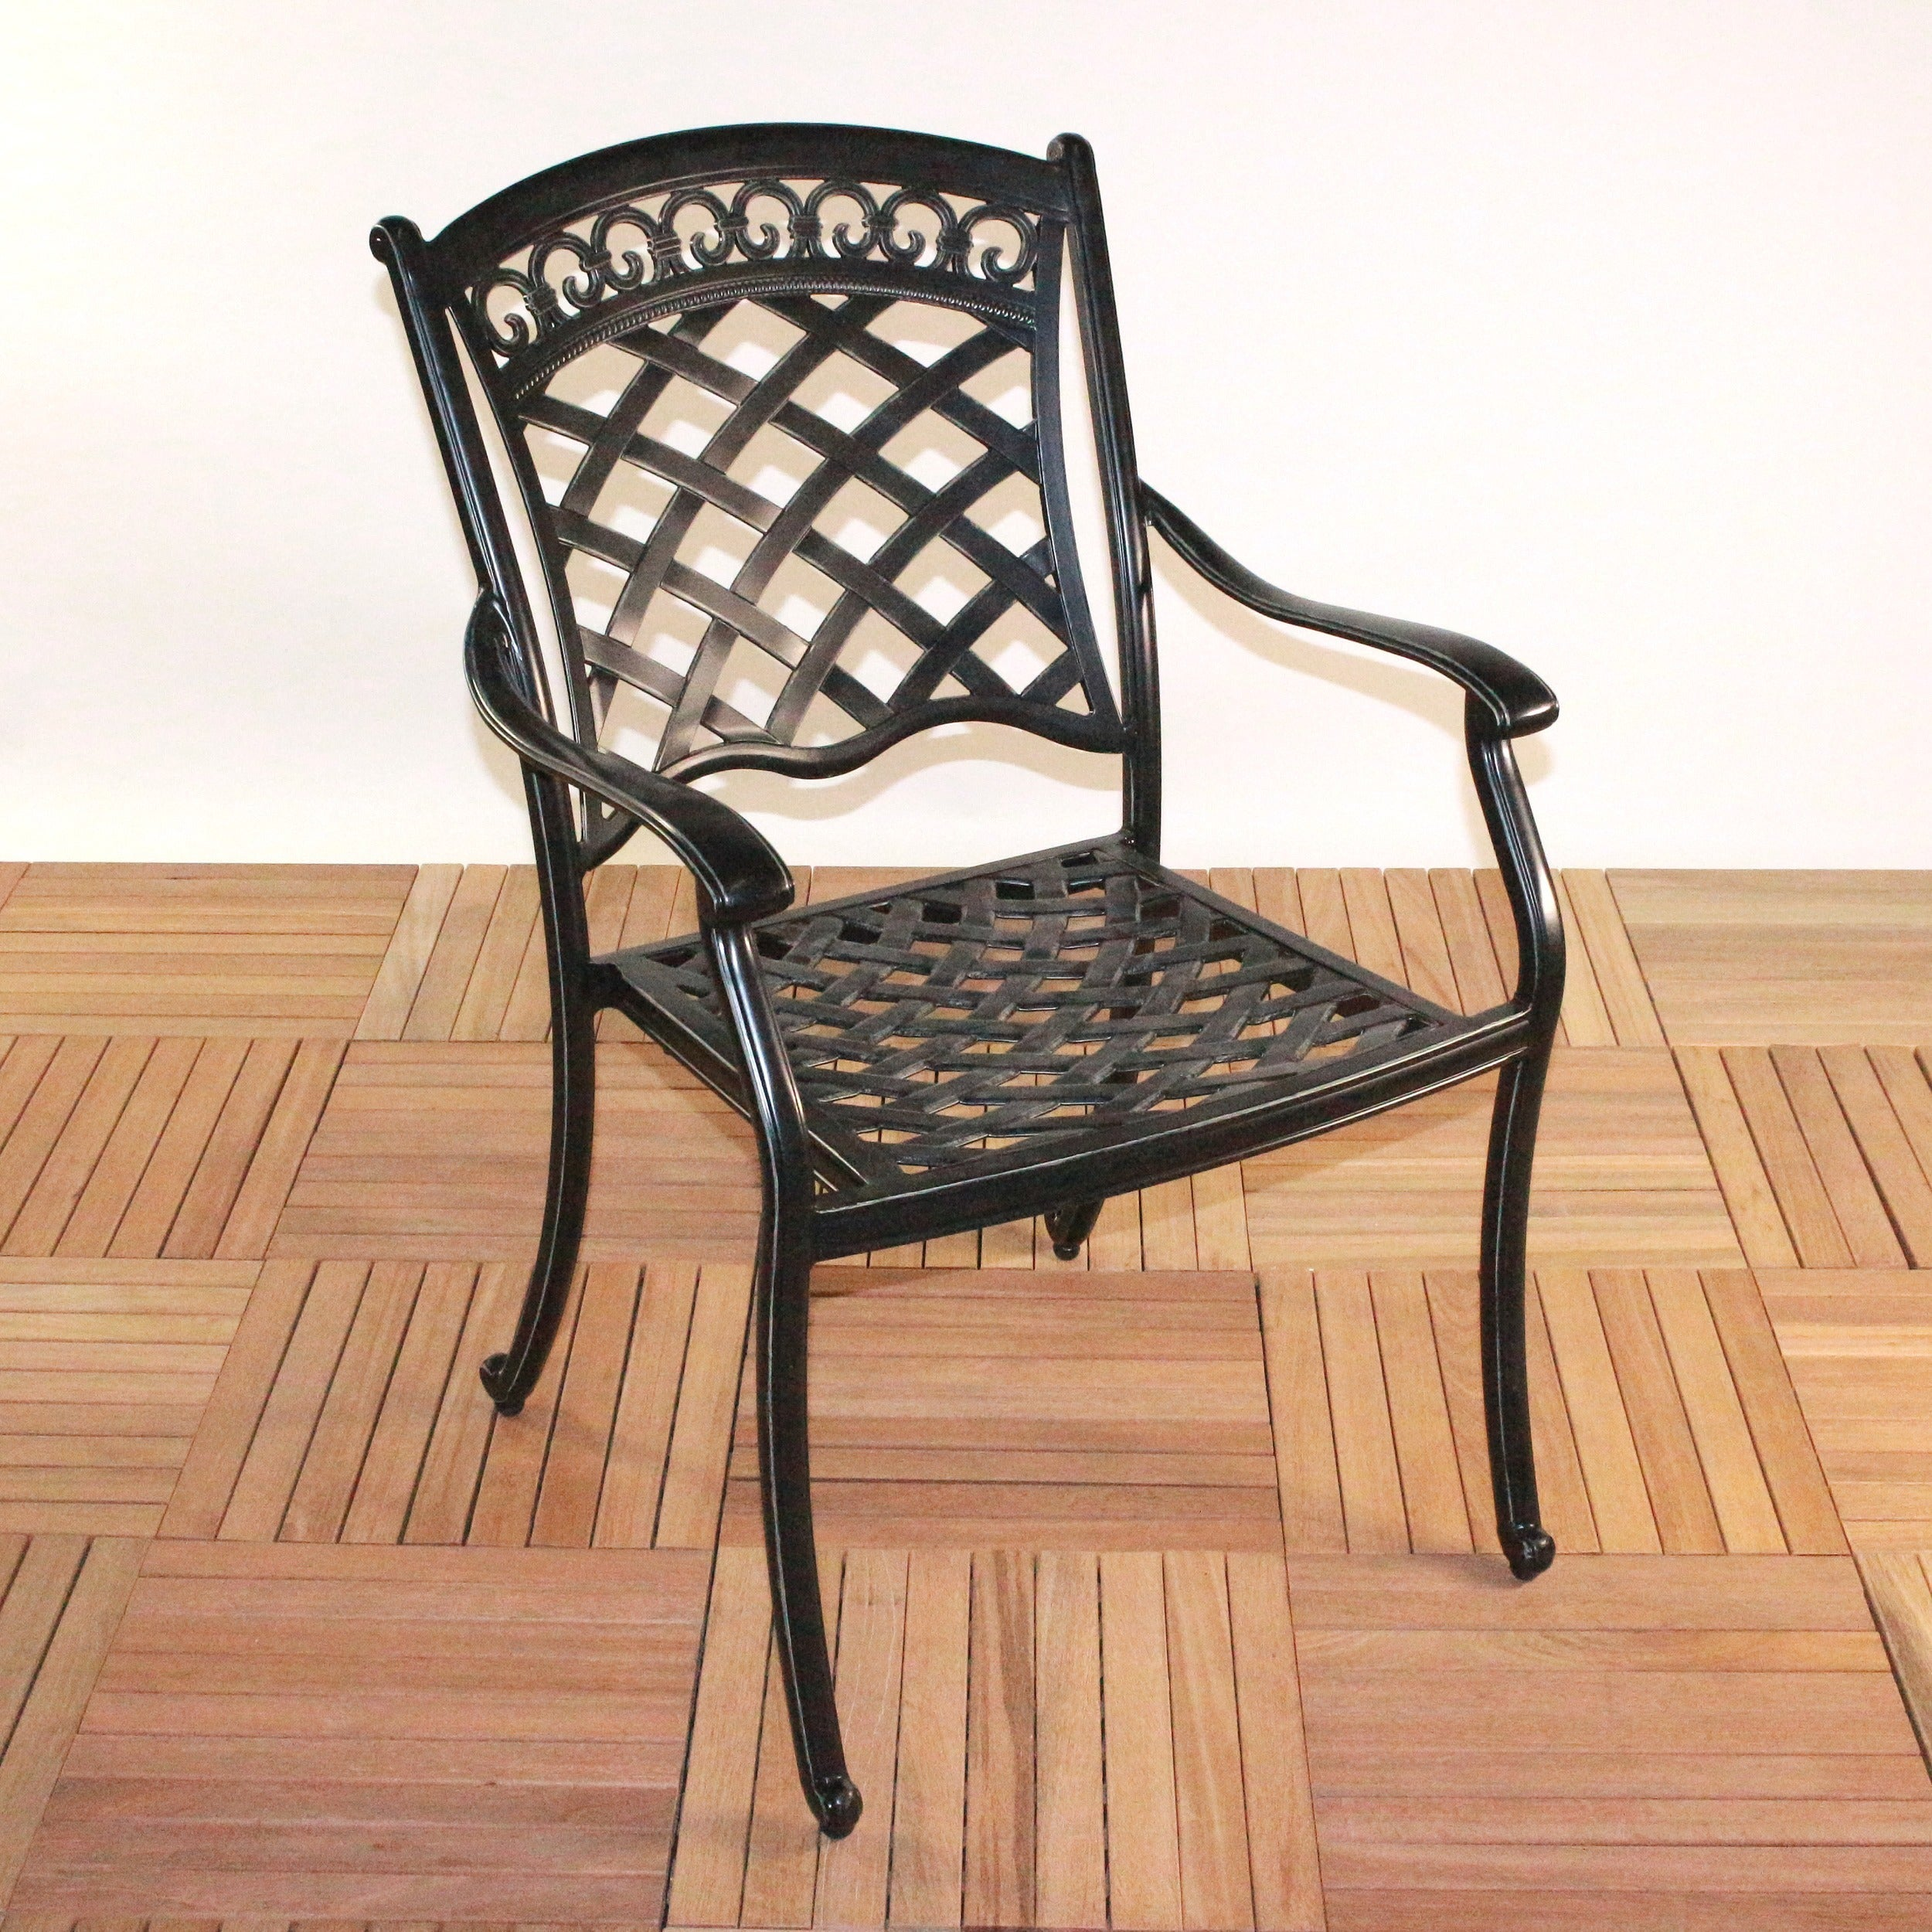 75c22861a8d Shop ComfortCare Large Dark Desert Bronze Cast Aluminum Patio Dining Set -  Free Shipping Today - Overstock.com - 8892915